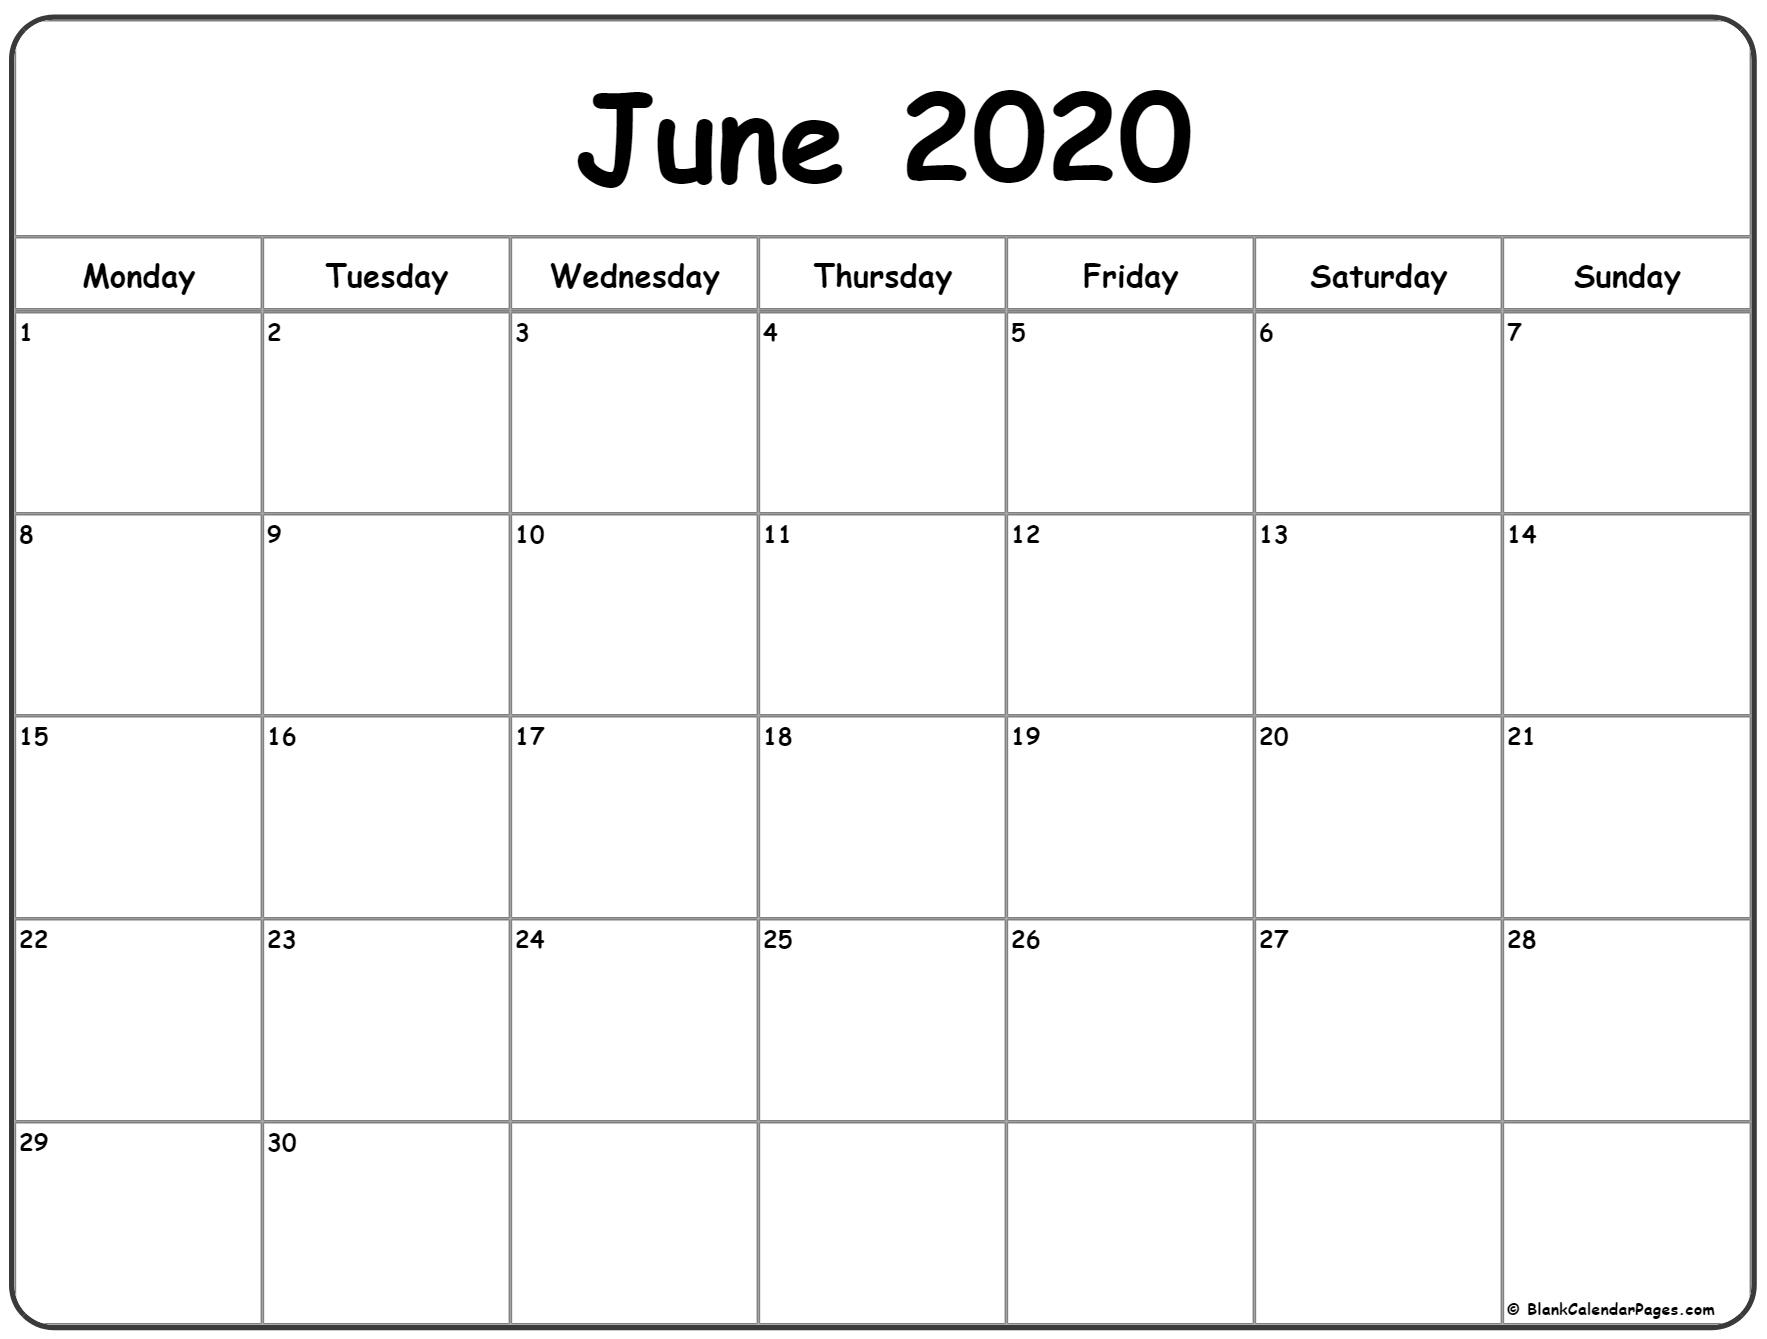 June 2020 Monday Calendar | Monday To Sunday regarding 2020 Monthly Calendar Start Monday